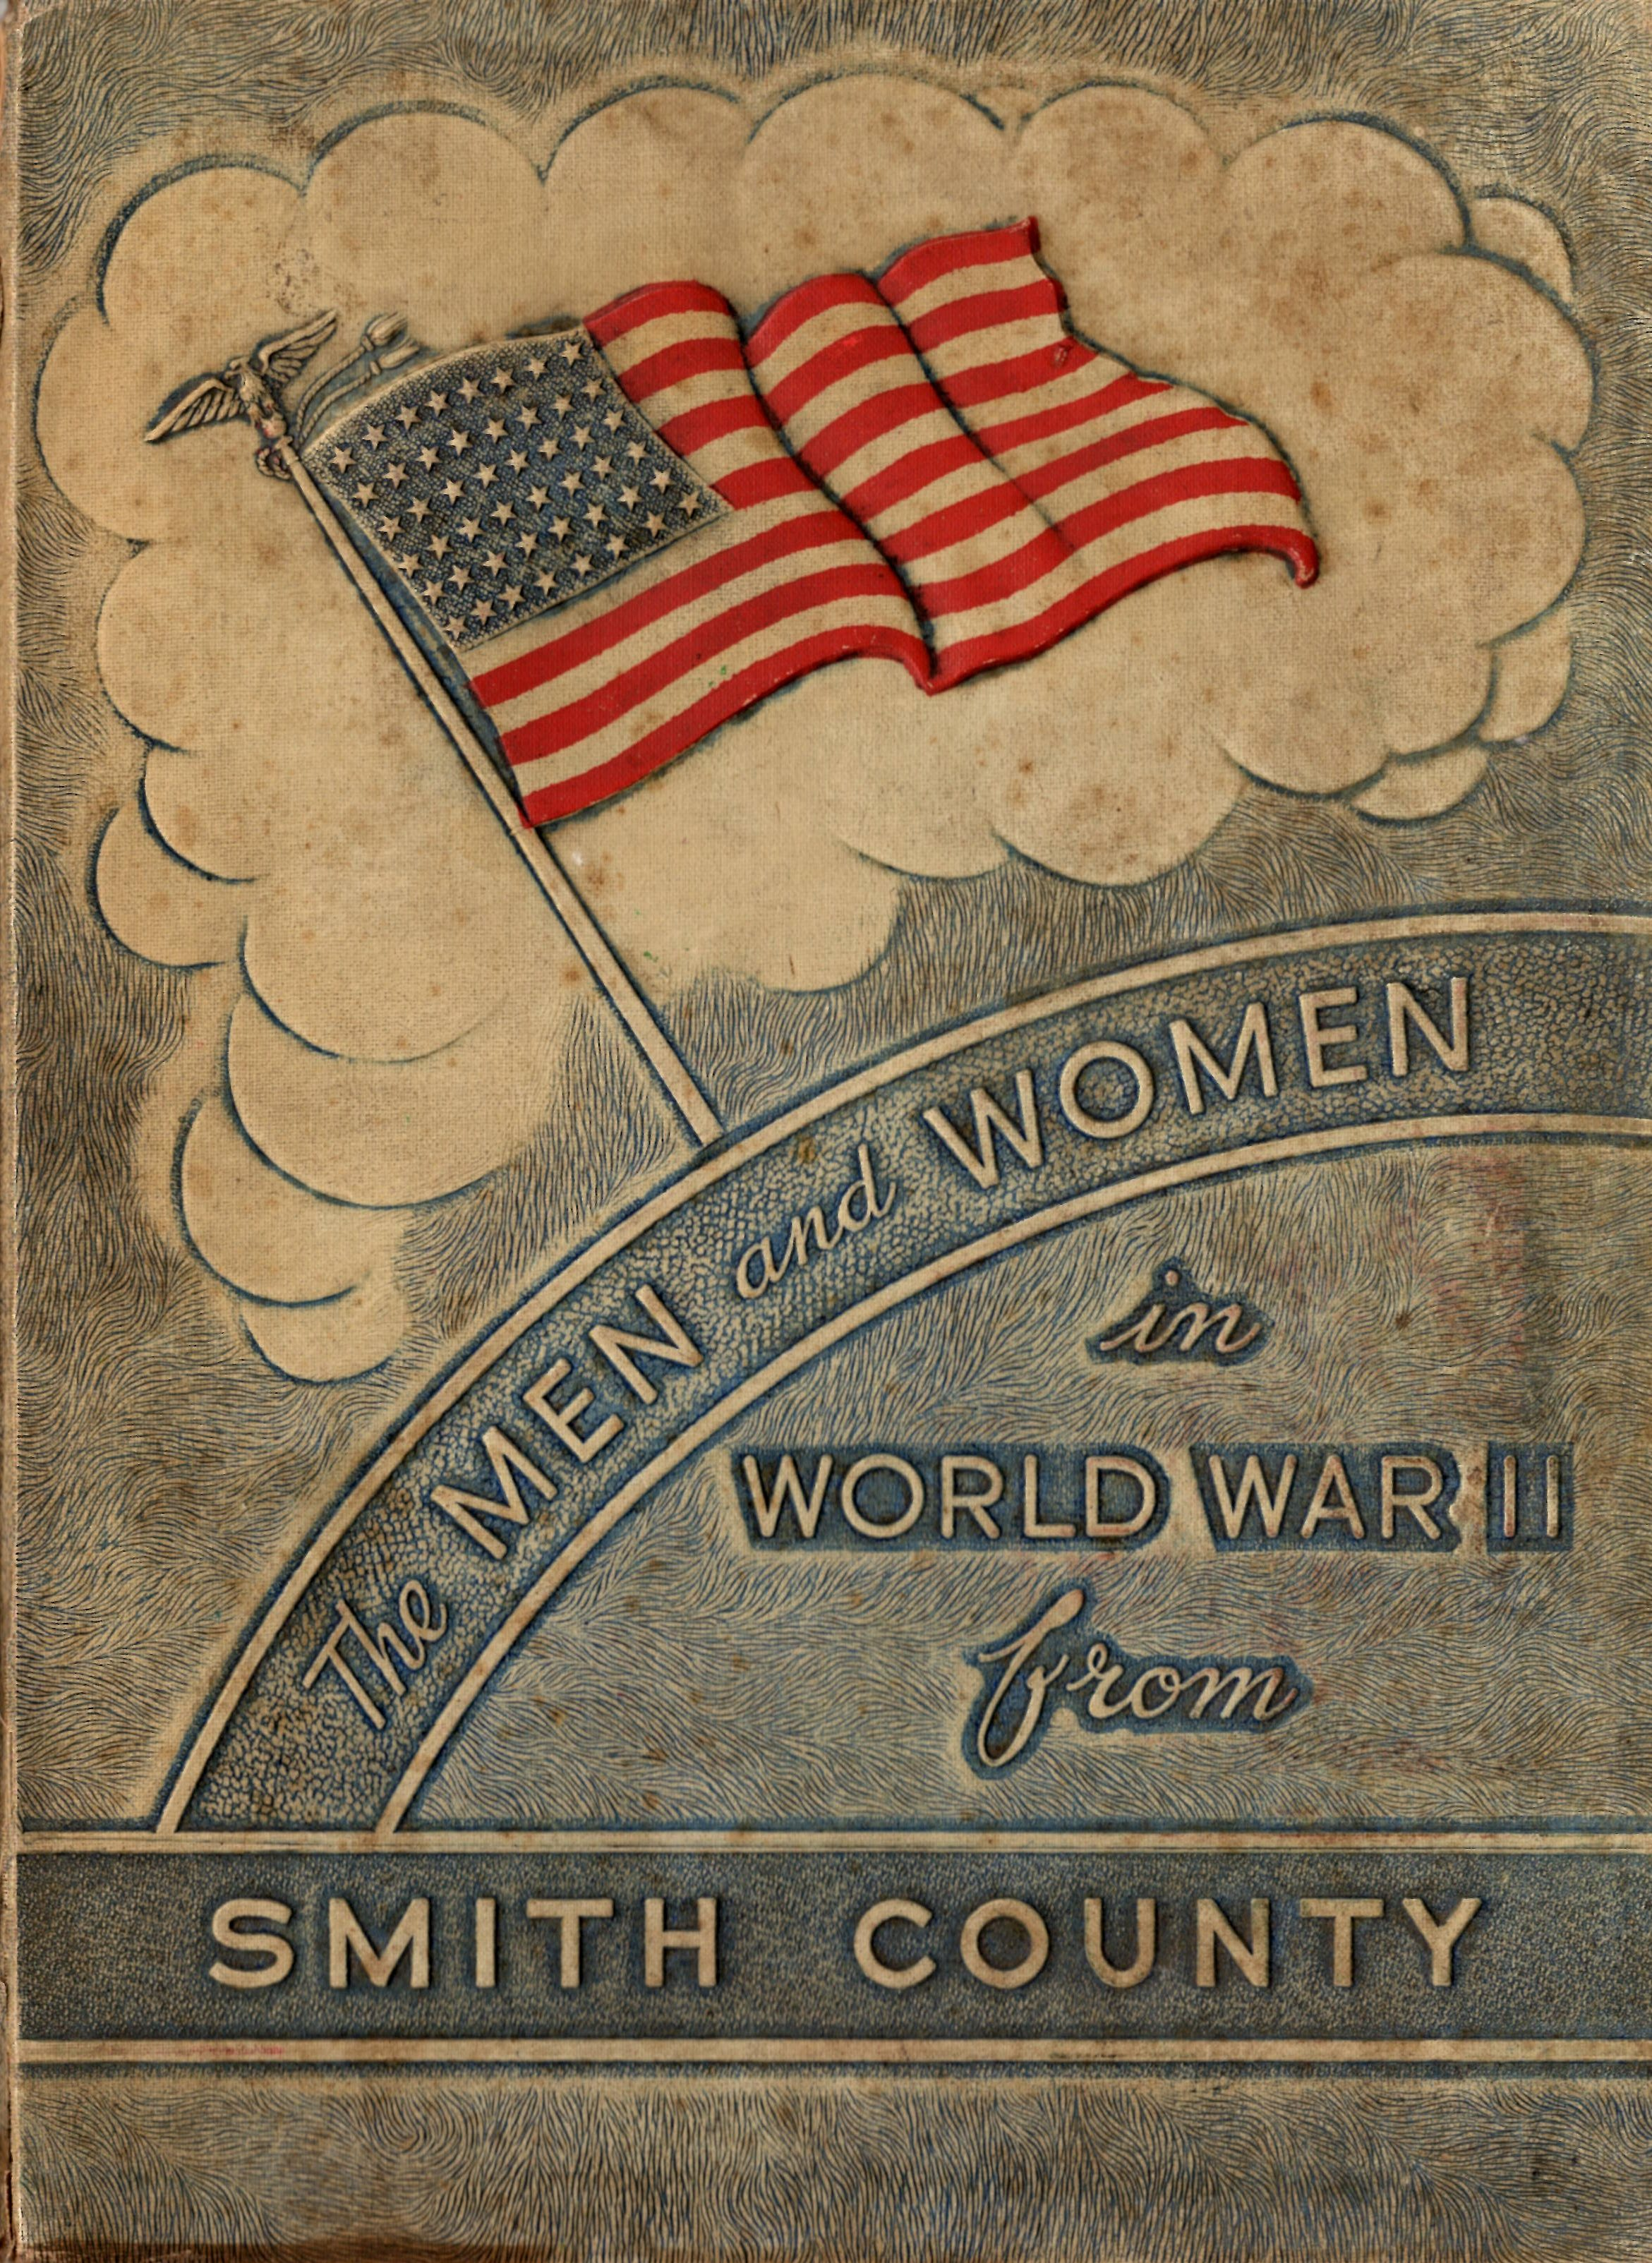 Men and women in the Armed Forces from Smith County Texas